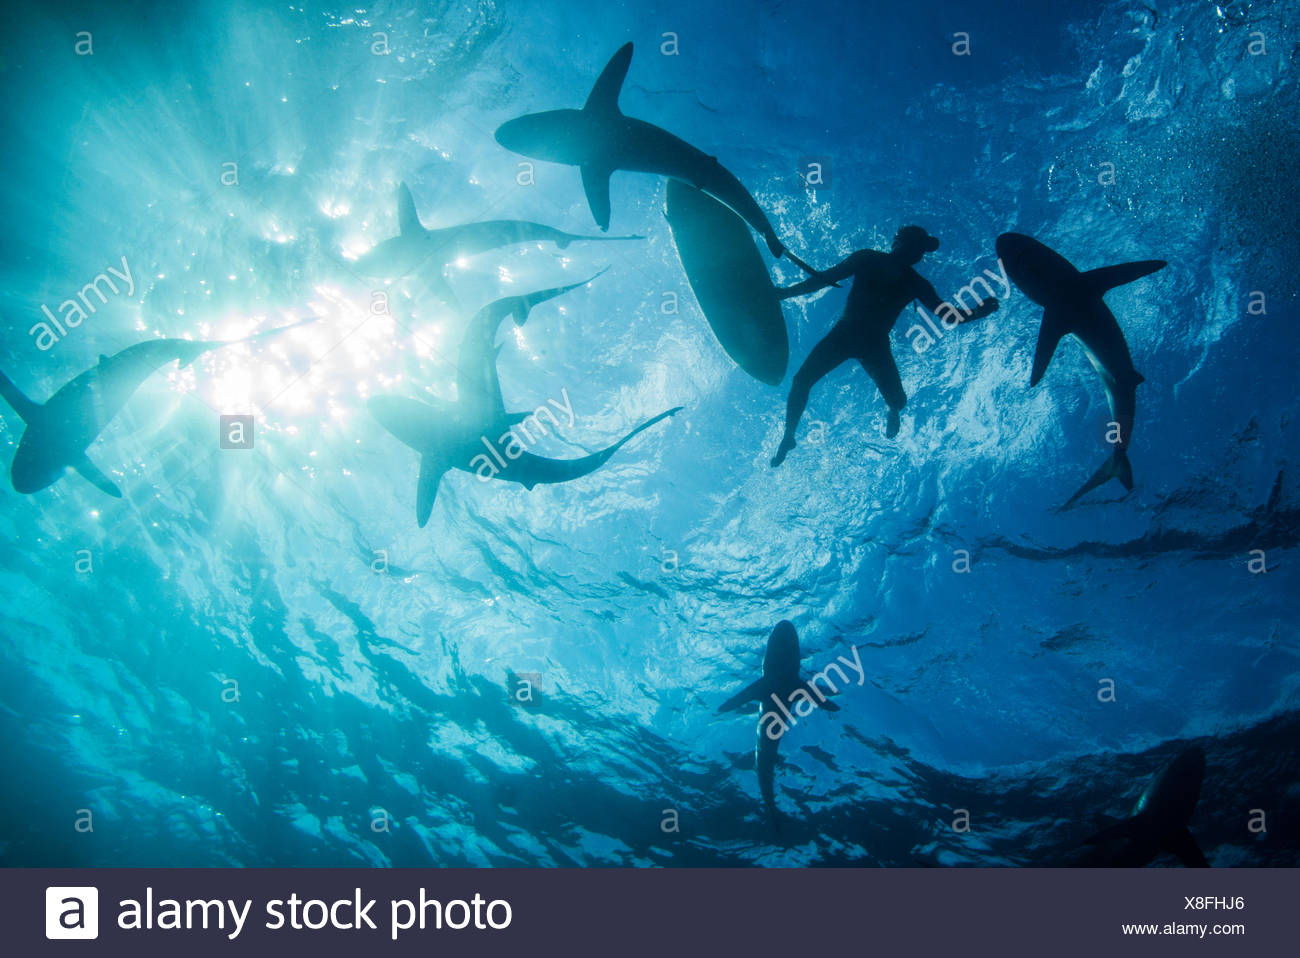 Low angle underwater view of surfer with surfboard with sharks, Colima, Mexico - Stock Image